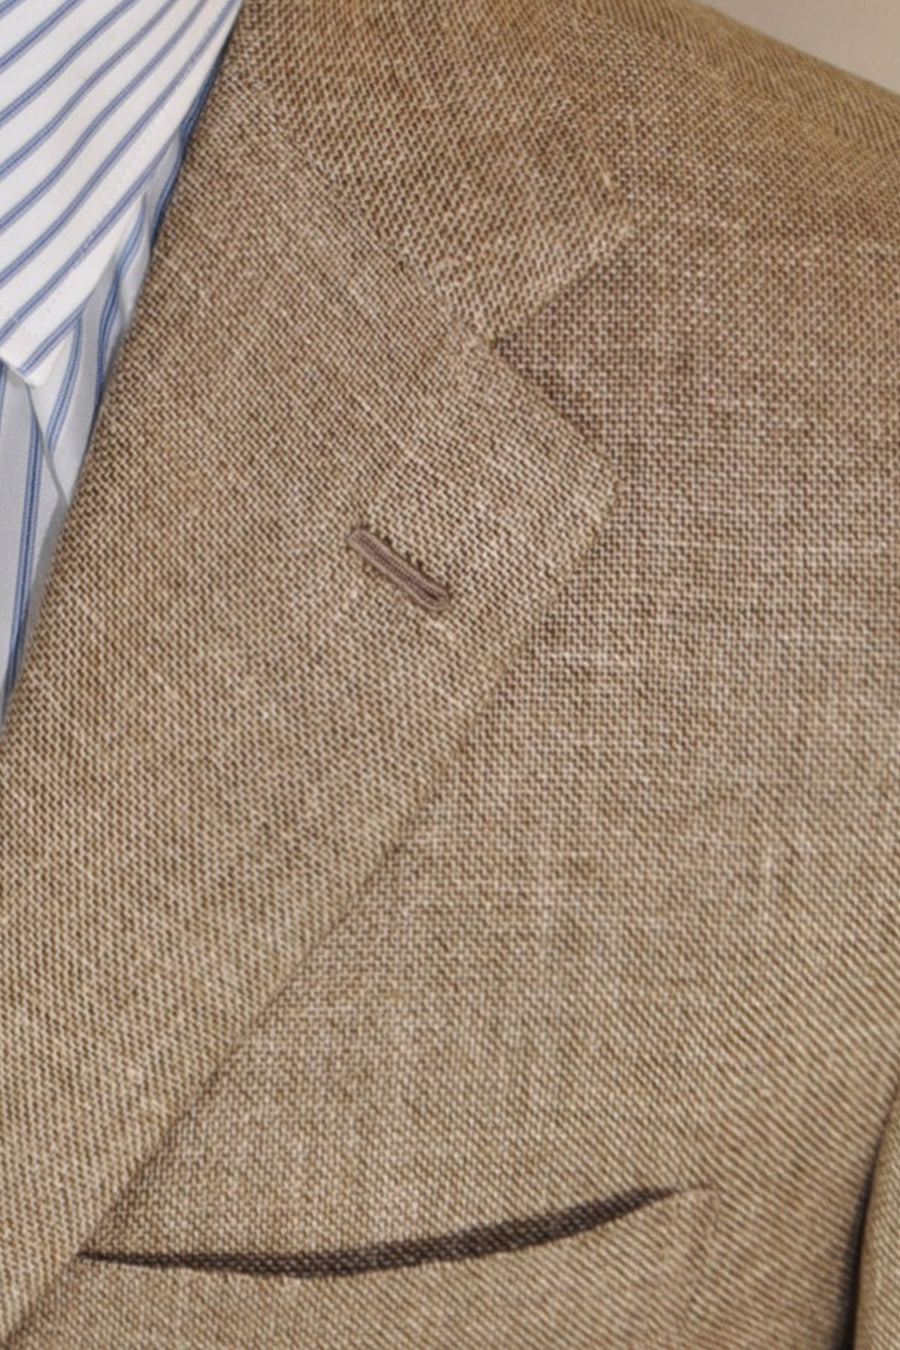 Kiton Sportcoat Cashmere Linen Brown Gray